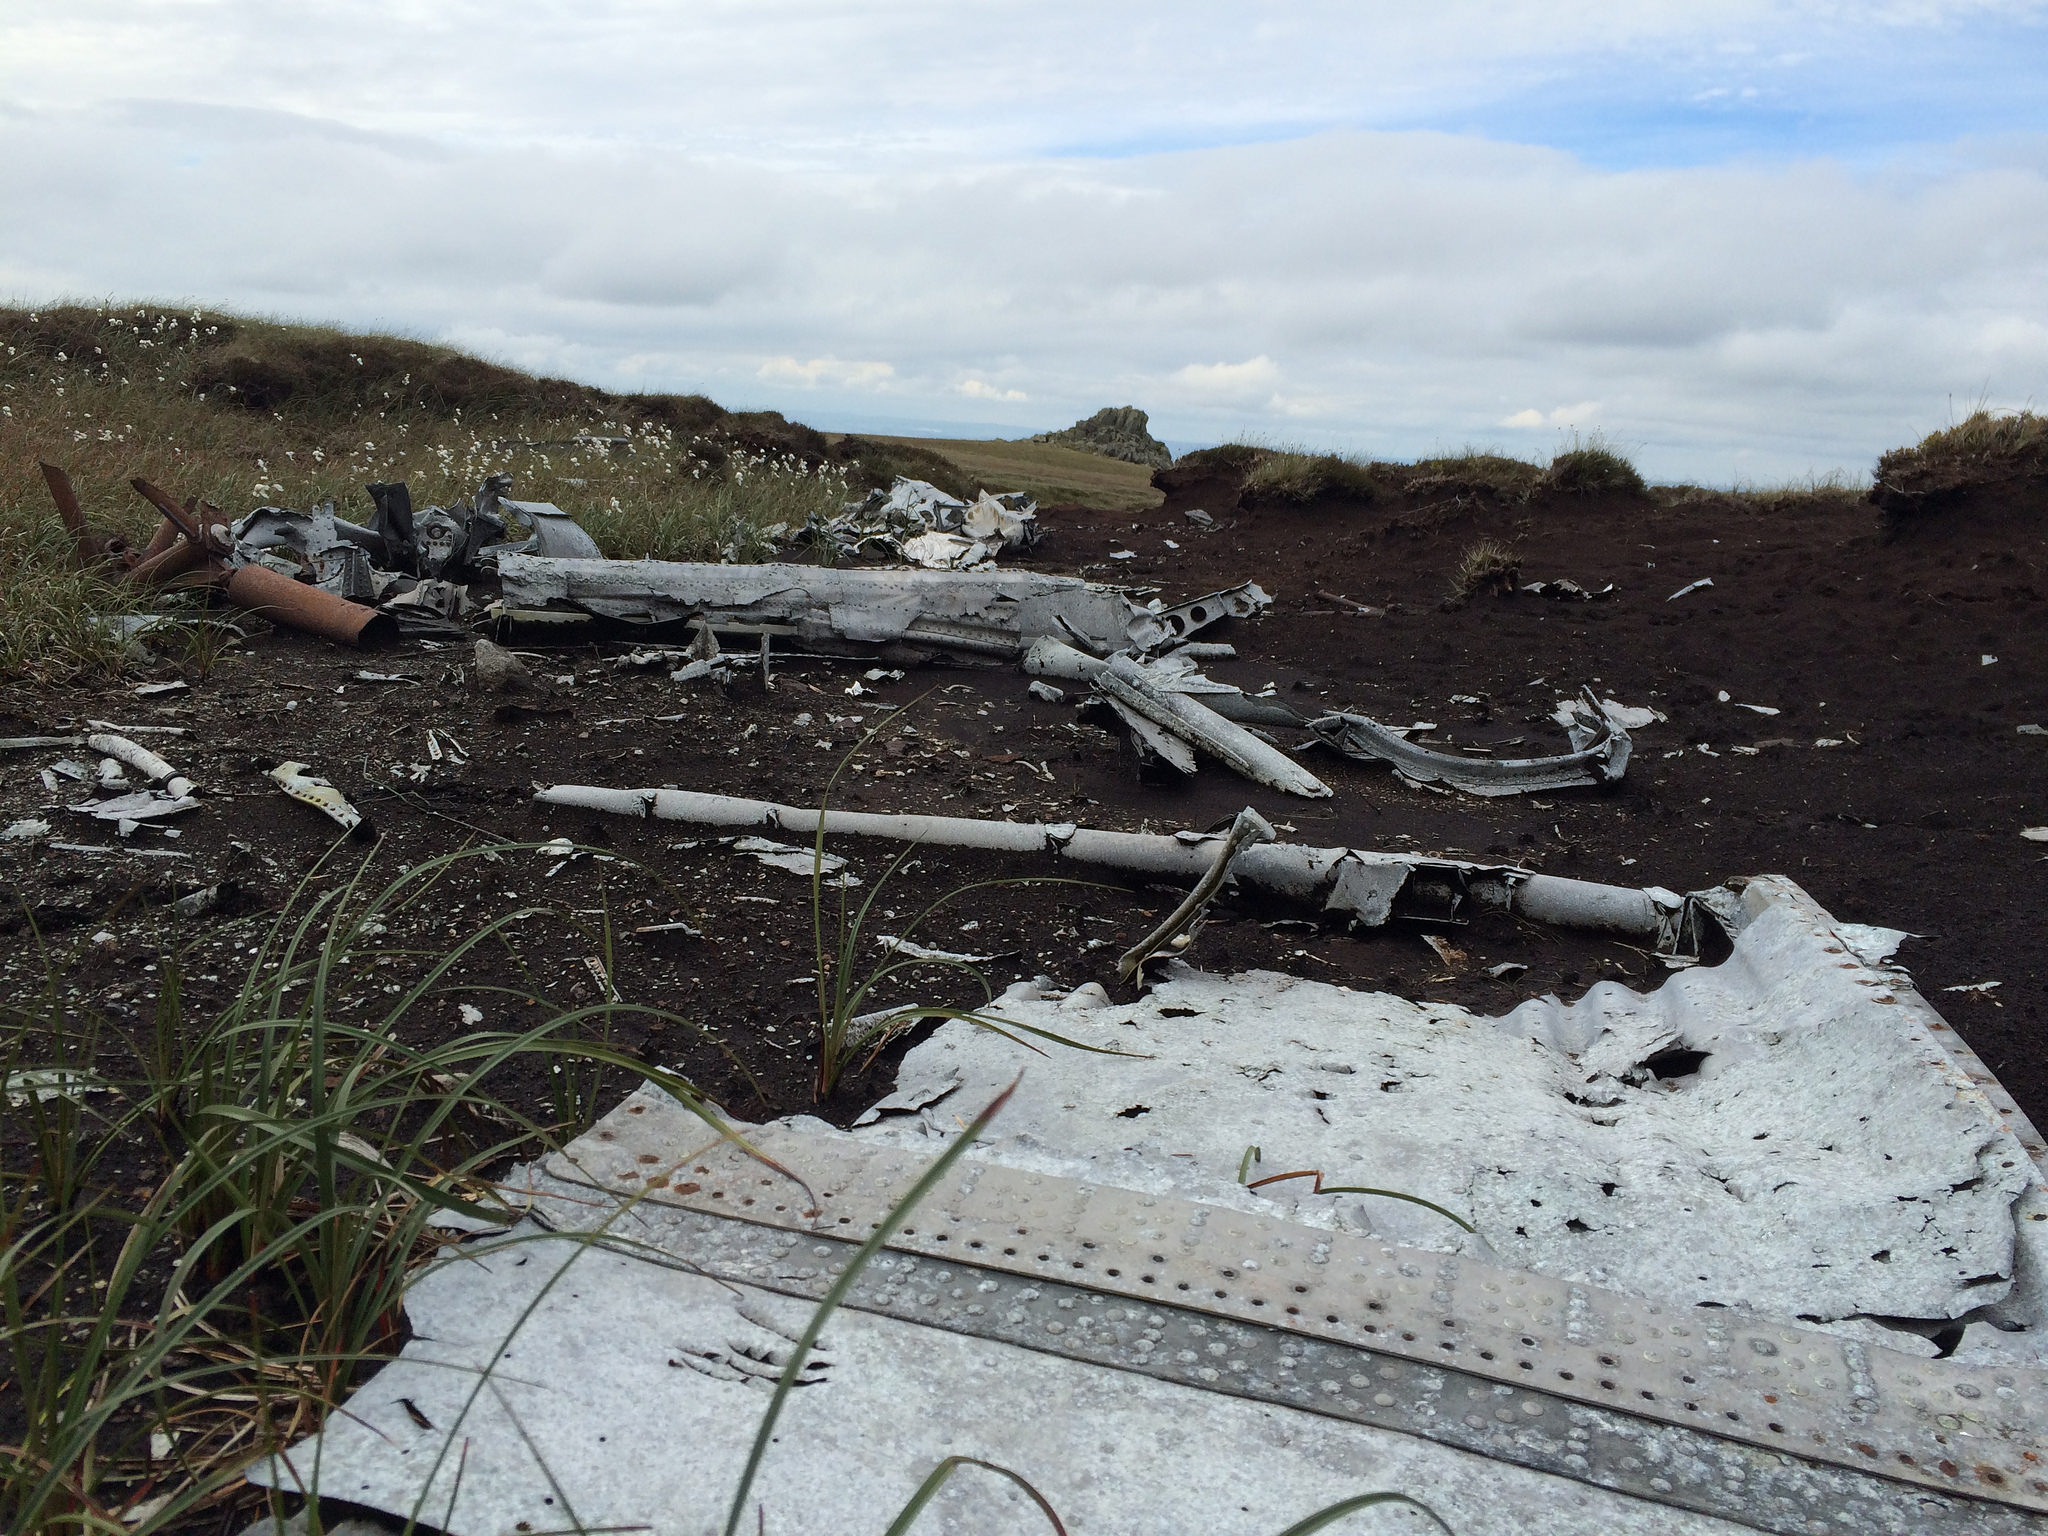 Cheviots: Flying Fortress Wreckage Pt 2